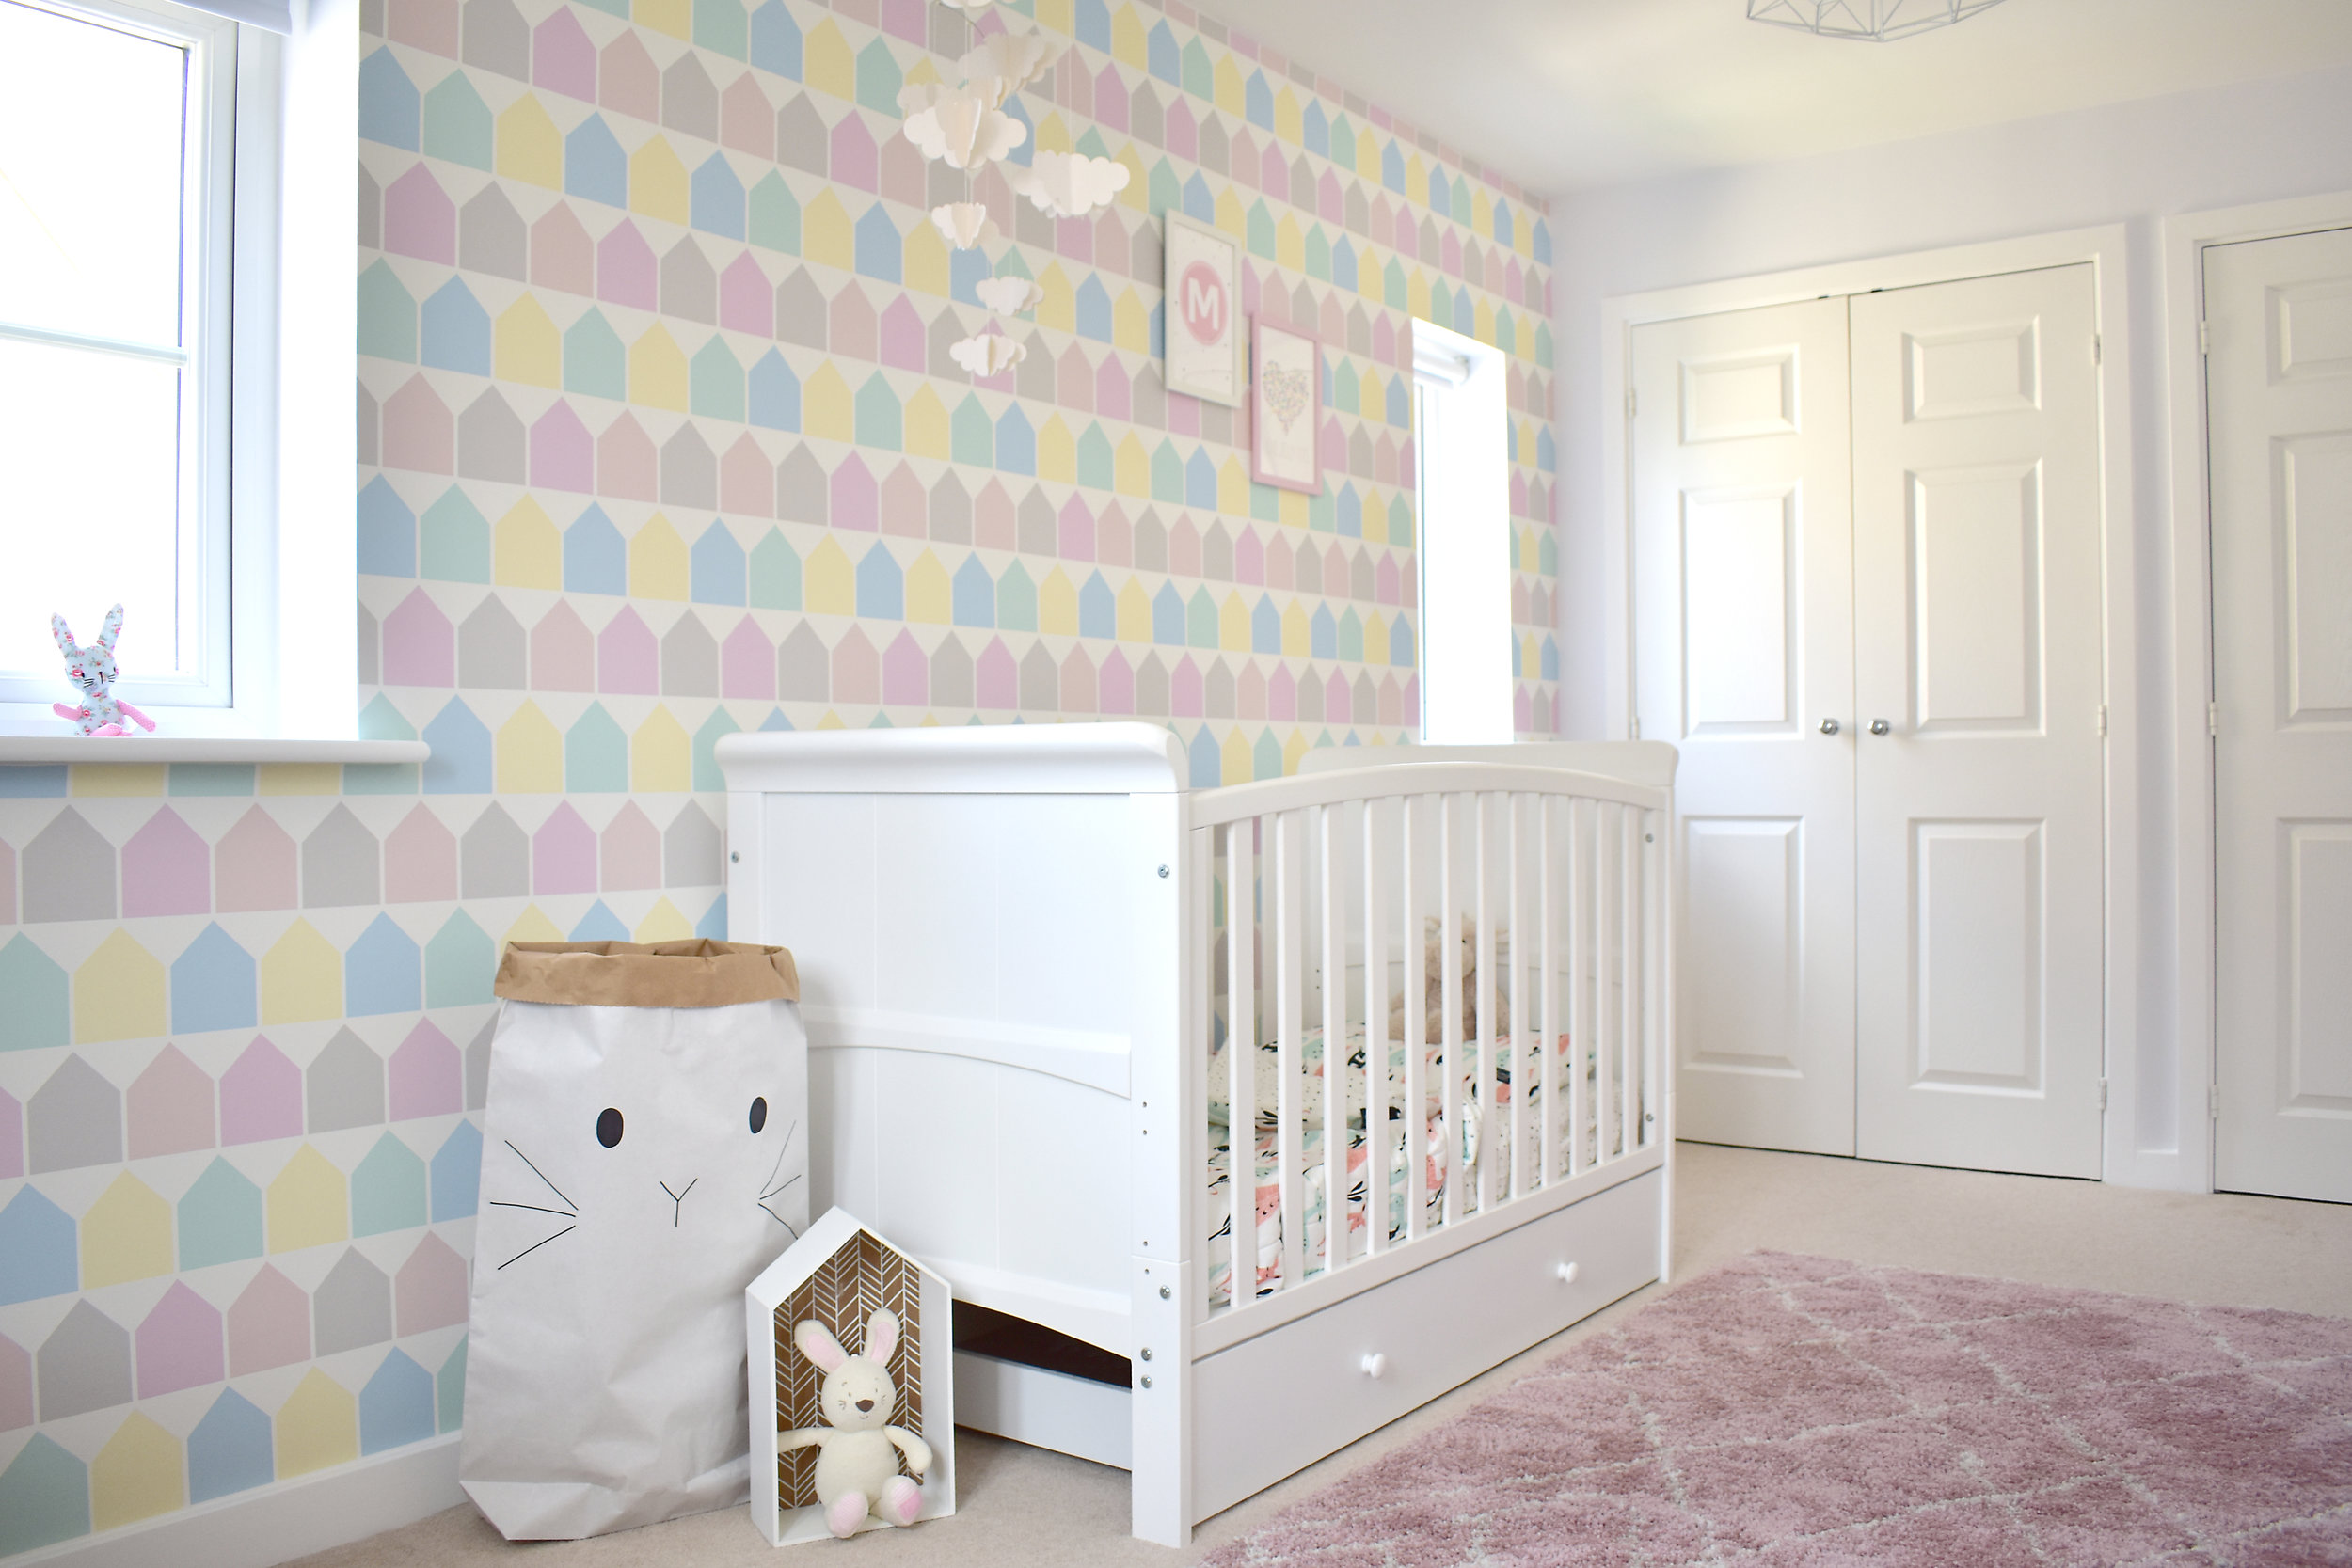 The  Beach Huts wallpaper  makes the feature wall and is the perfect soft contrast to the white of the furniture and walls